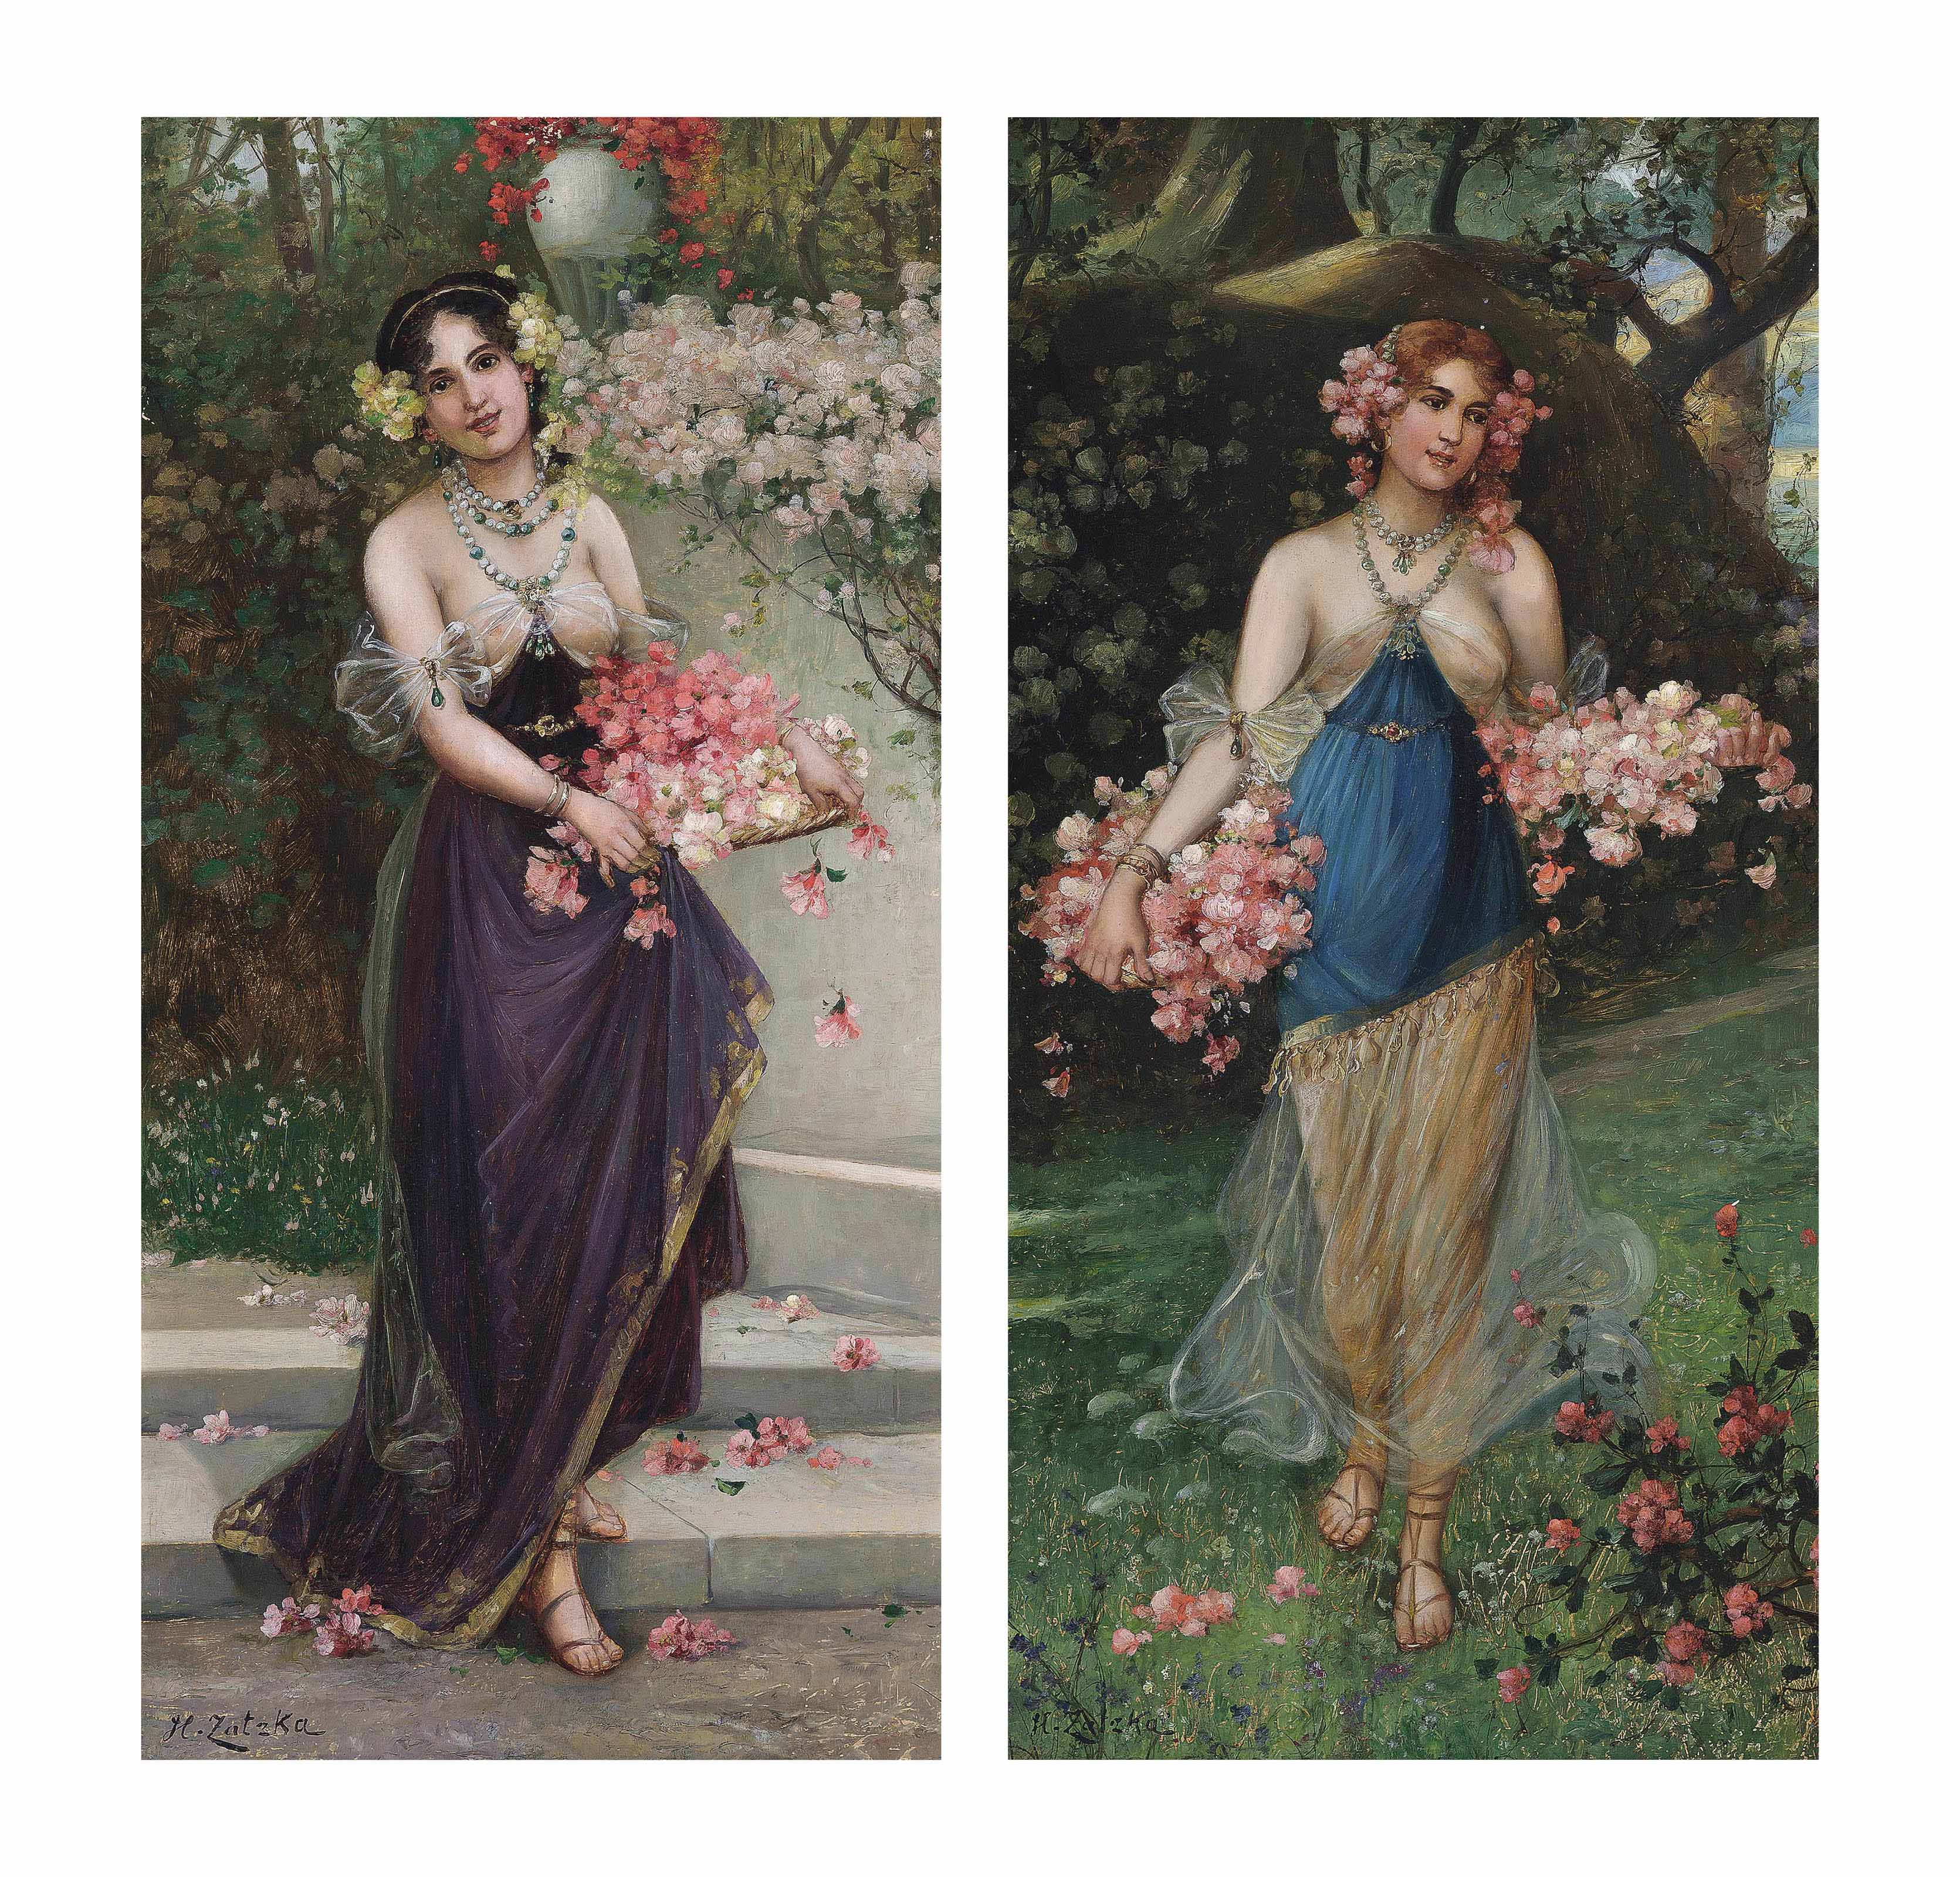 The maidens of Spring